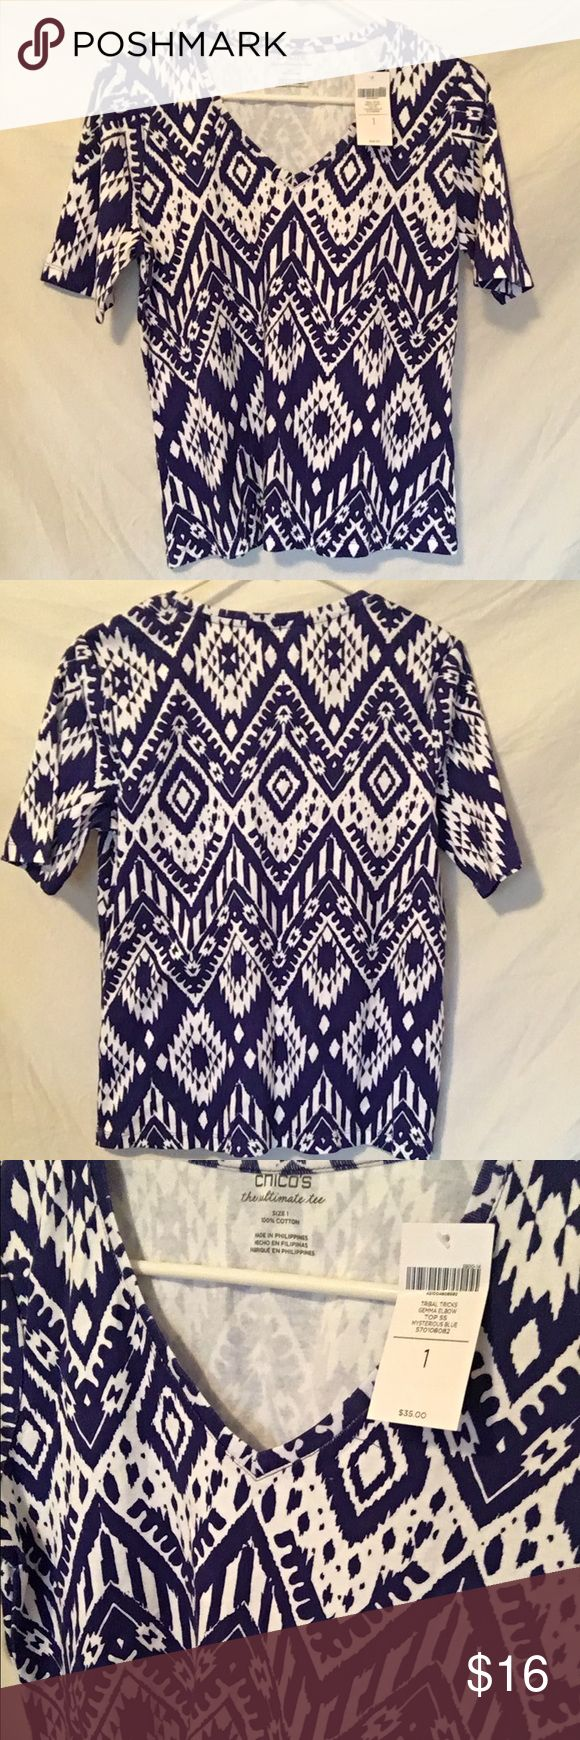 🆕NWT! Chico's tshirt! New with tags women's blue and white tshirt. Size 1 in Chico's. Fits a small loosely and fits a medium perfect with a little room. 100% cotton. Amazingly comfortable and soft. Super cute print! Chico's Tops Tees - Short Sleeve